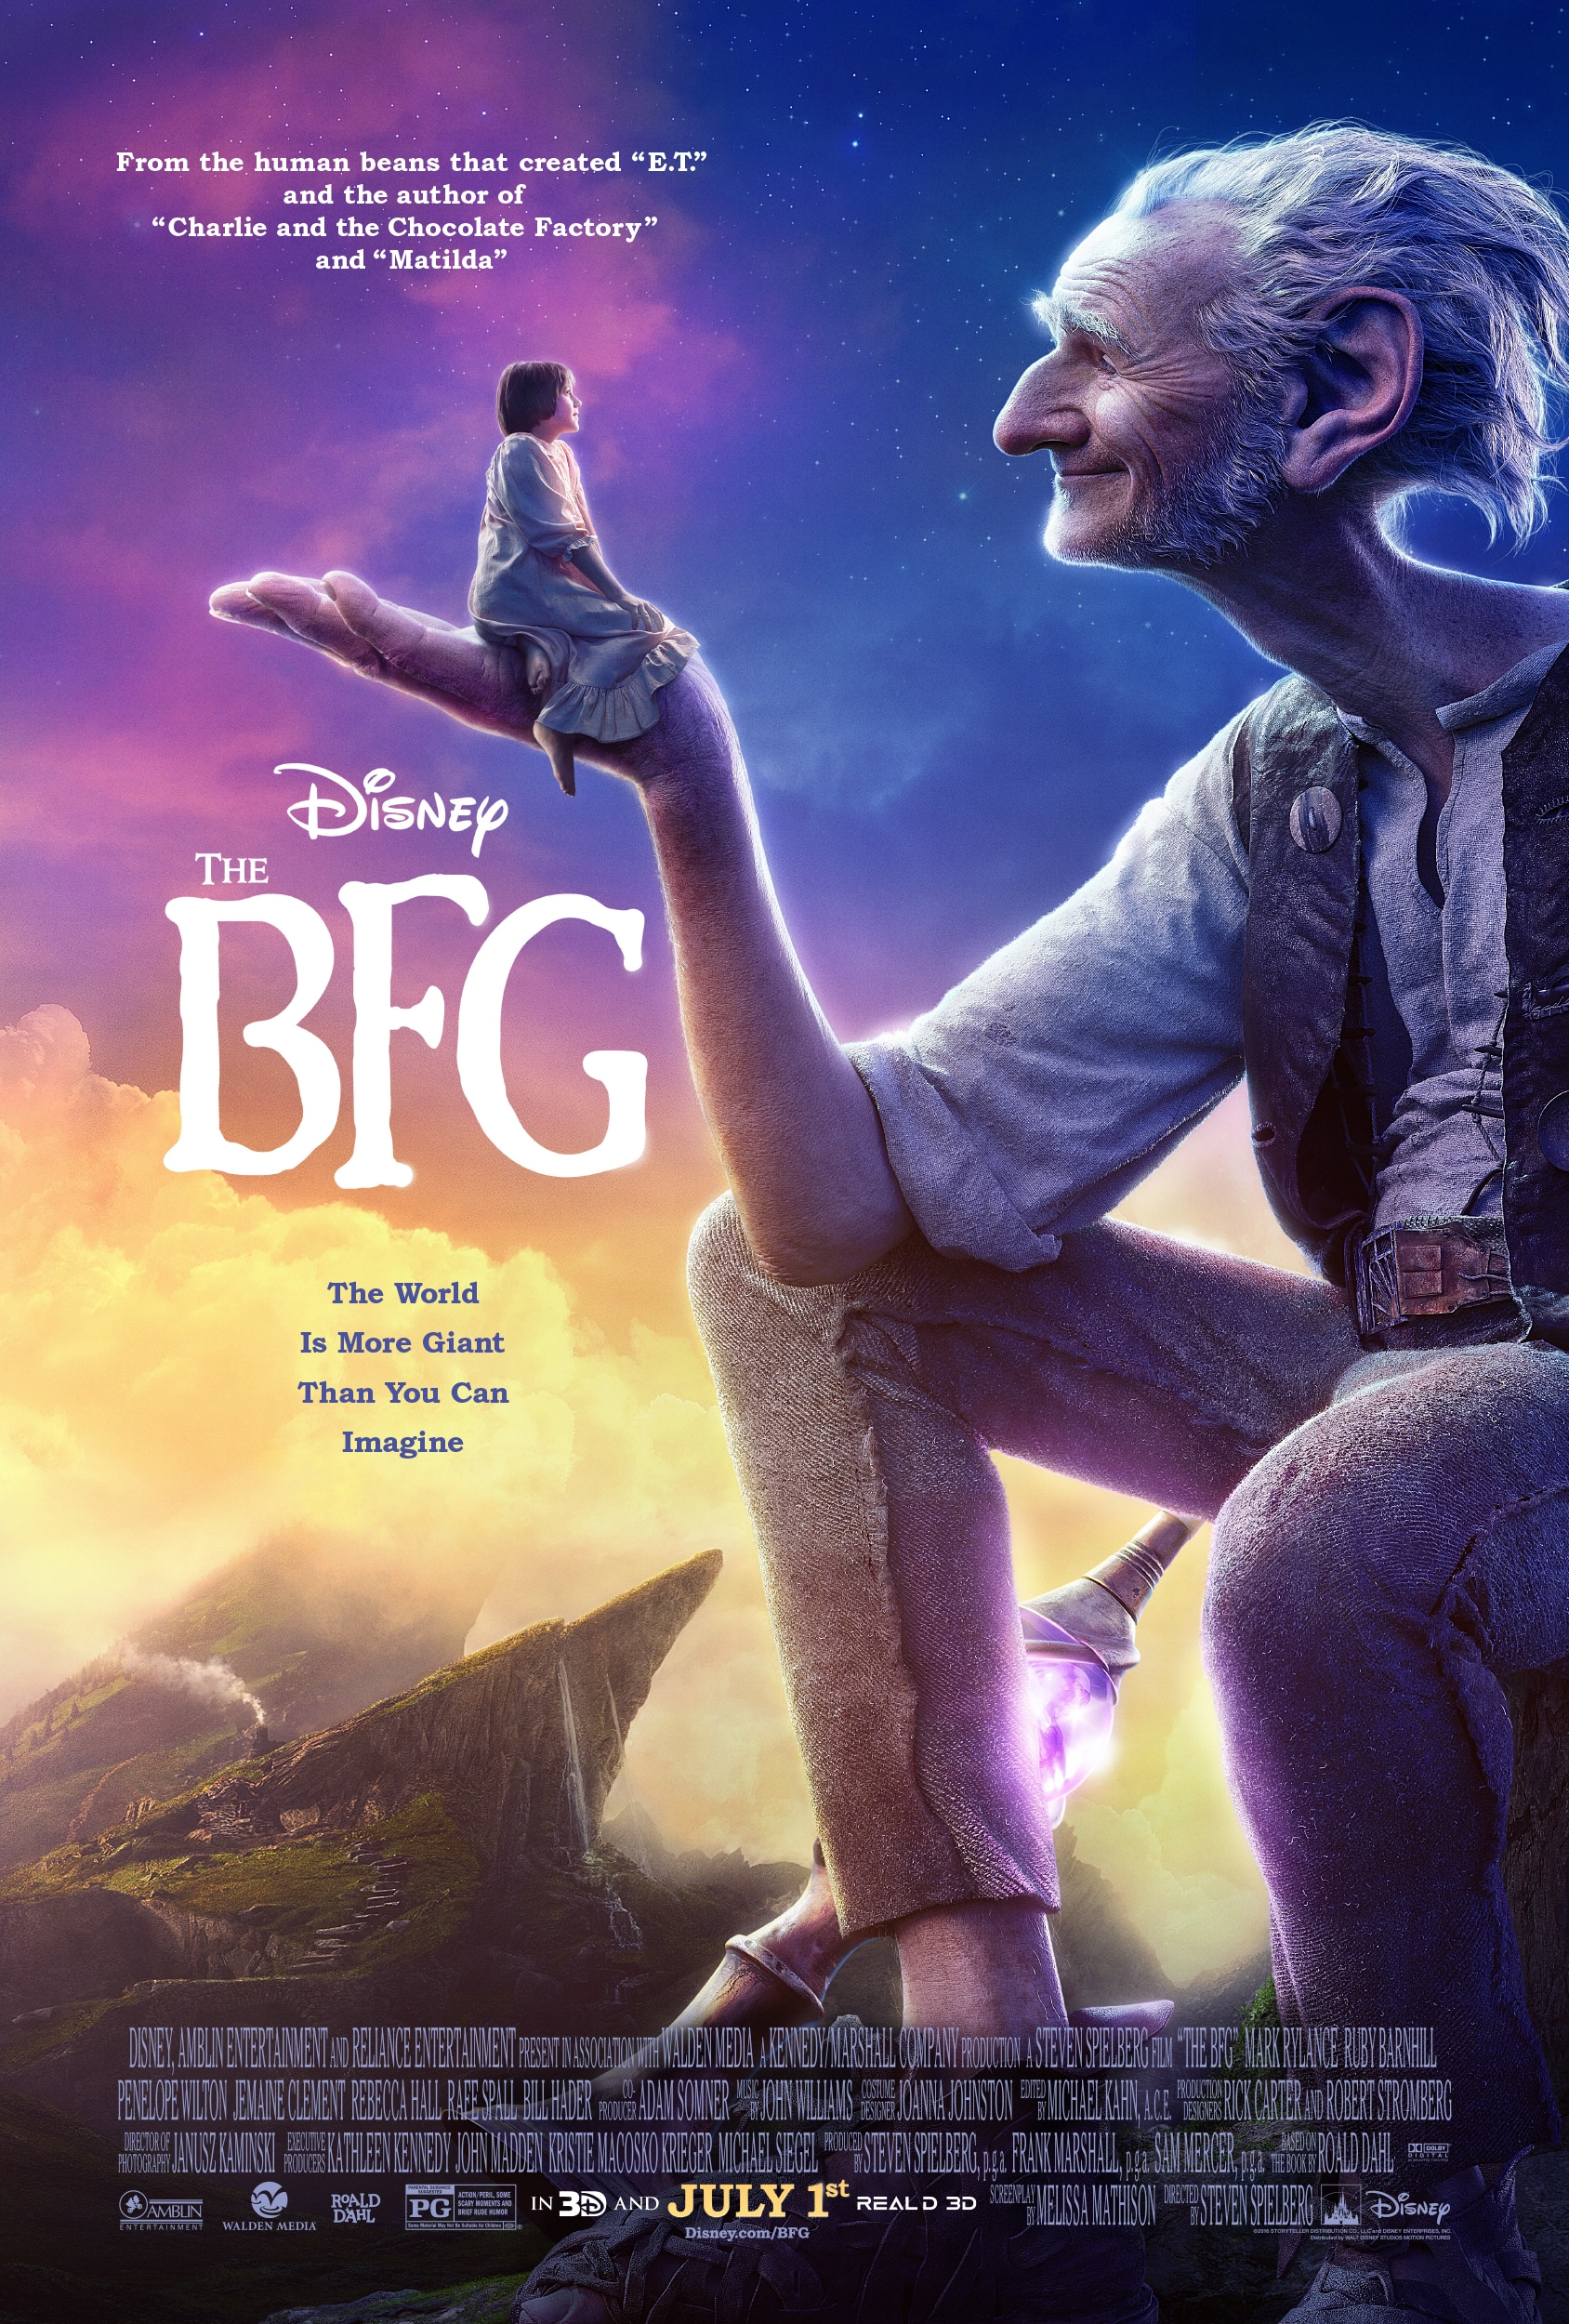 Disney's the BFG in theaters now. Find printables and activity sheets for kids at lovepeaceandtinyfeet.com